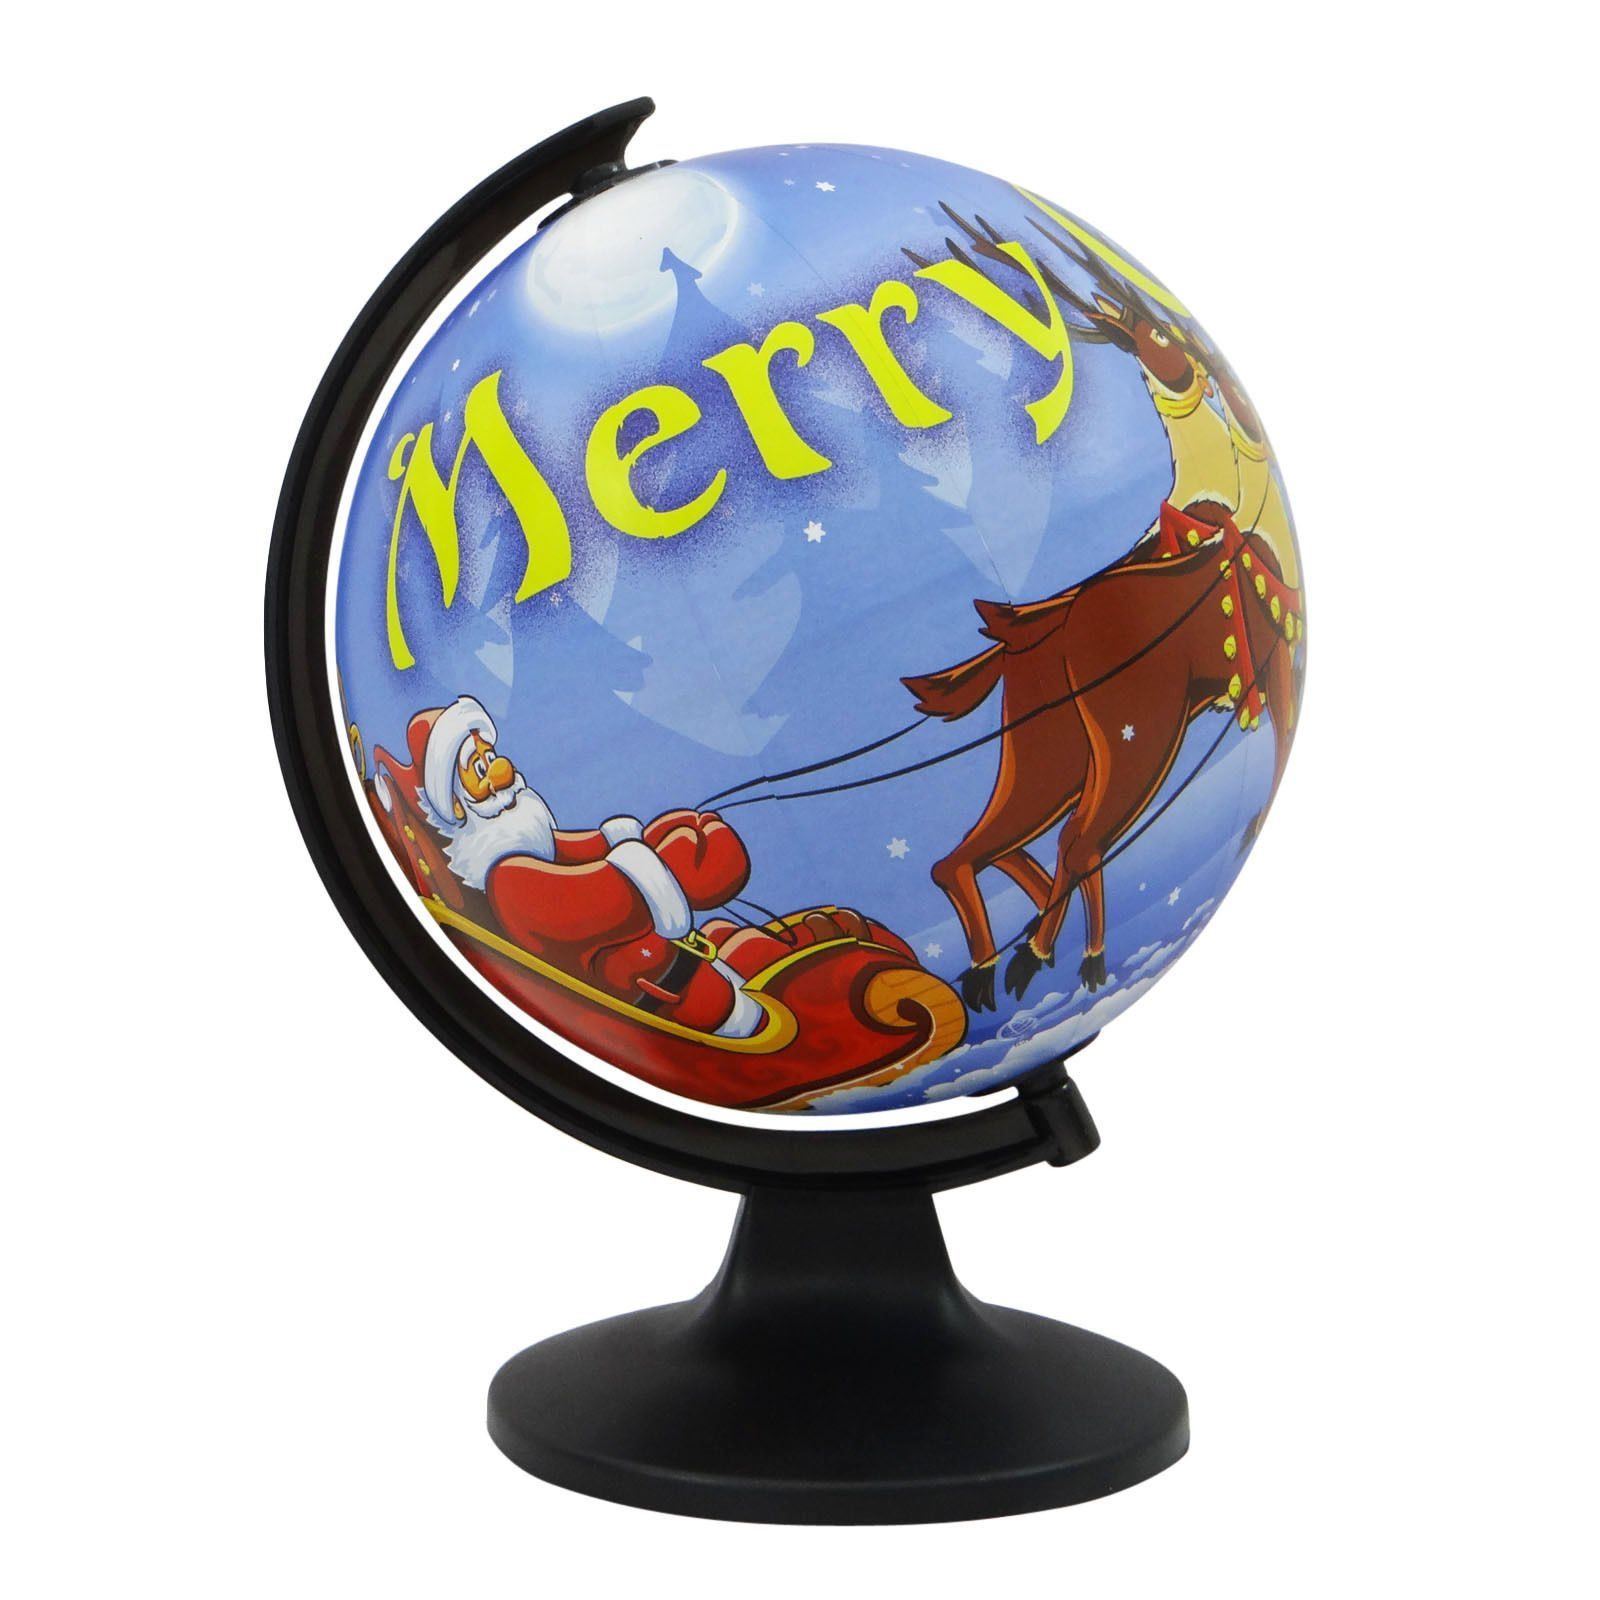 """Desktop Table Decor Rotating Globes Ocean Geographical Earth World Map Globe. Easy-to read names. Globe Circumference: 25.3"""" inches (approx). Ball Diameter: 8"""" Inches (approx). Base(Diameter): 6"""" Inches (approx). If you have any question, you can message to us."""